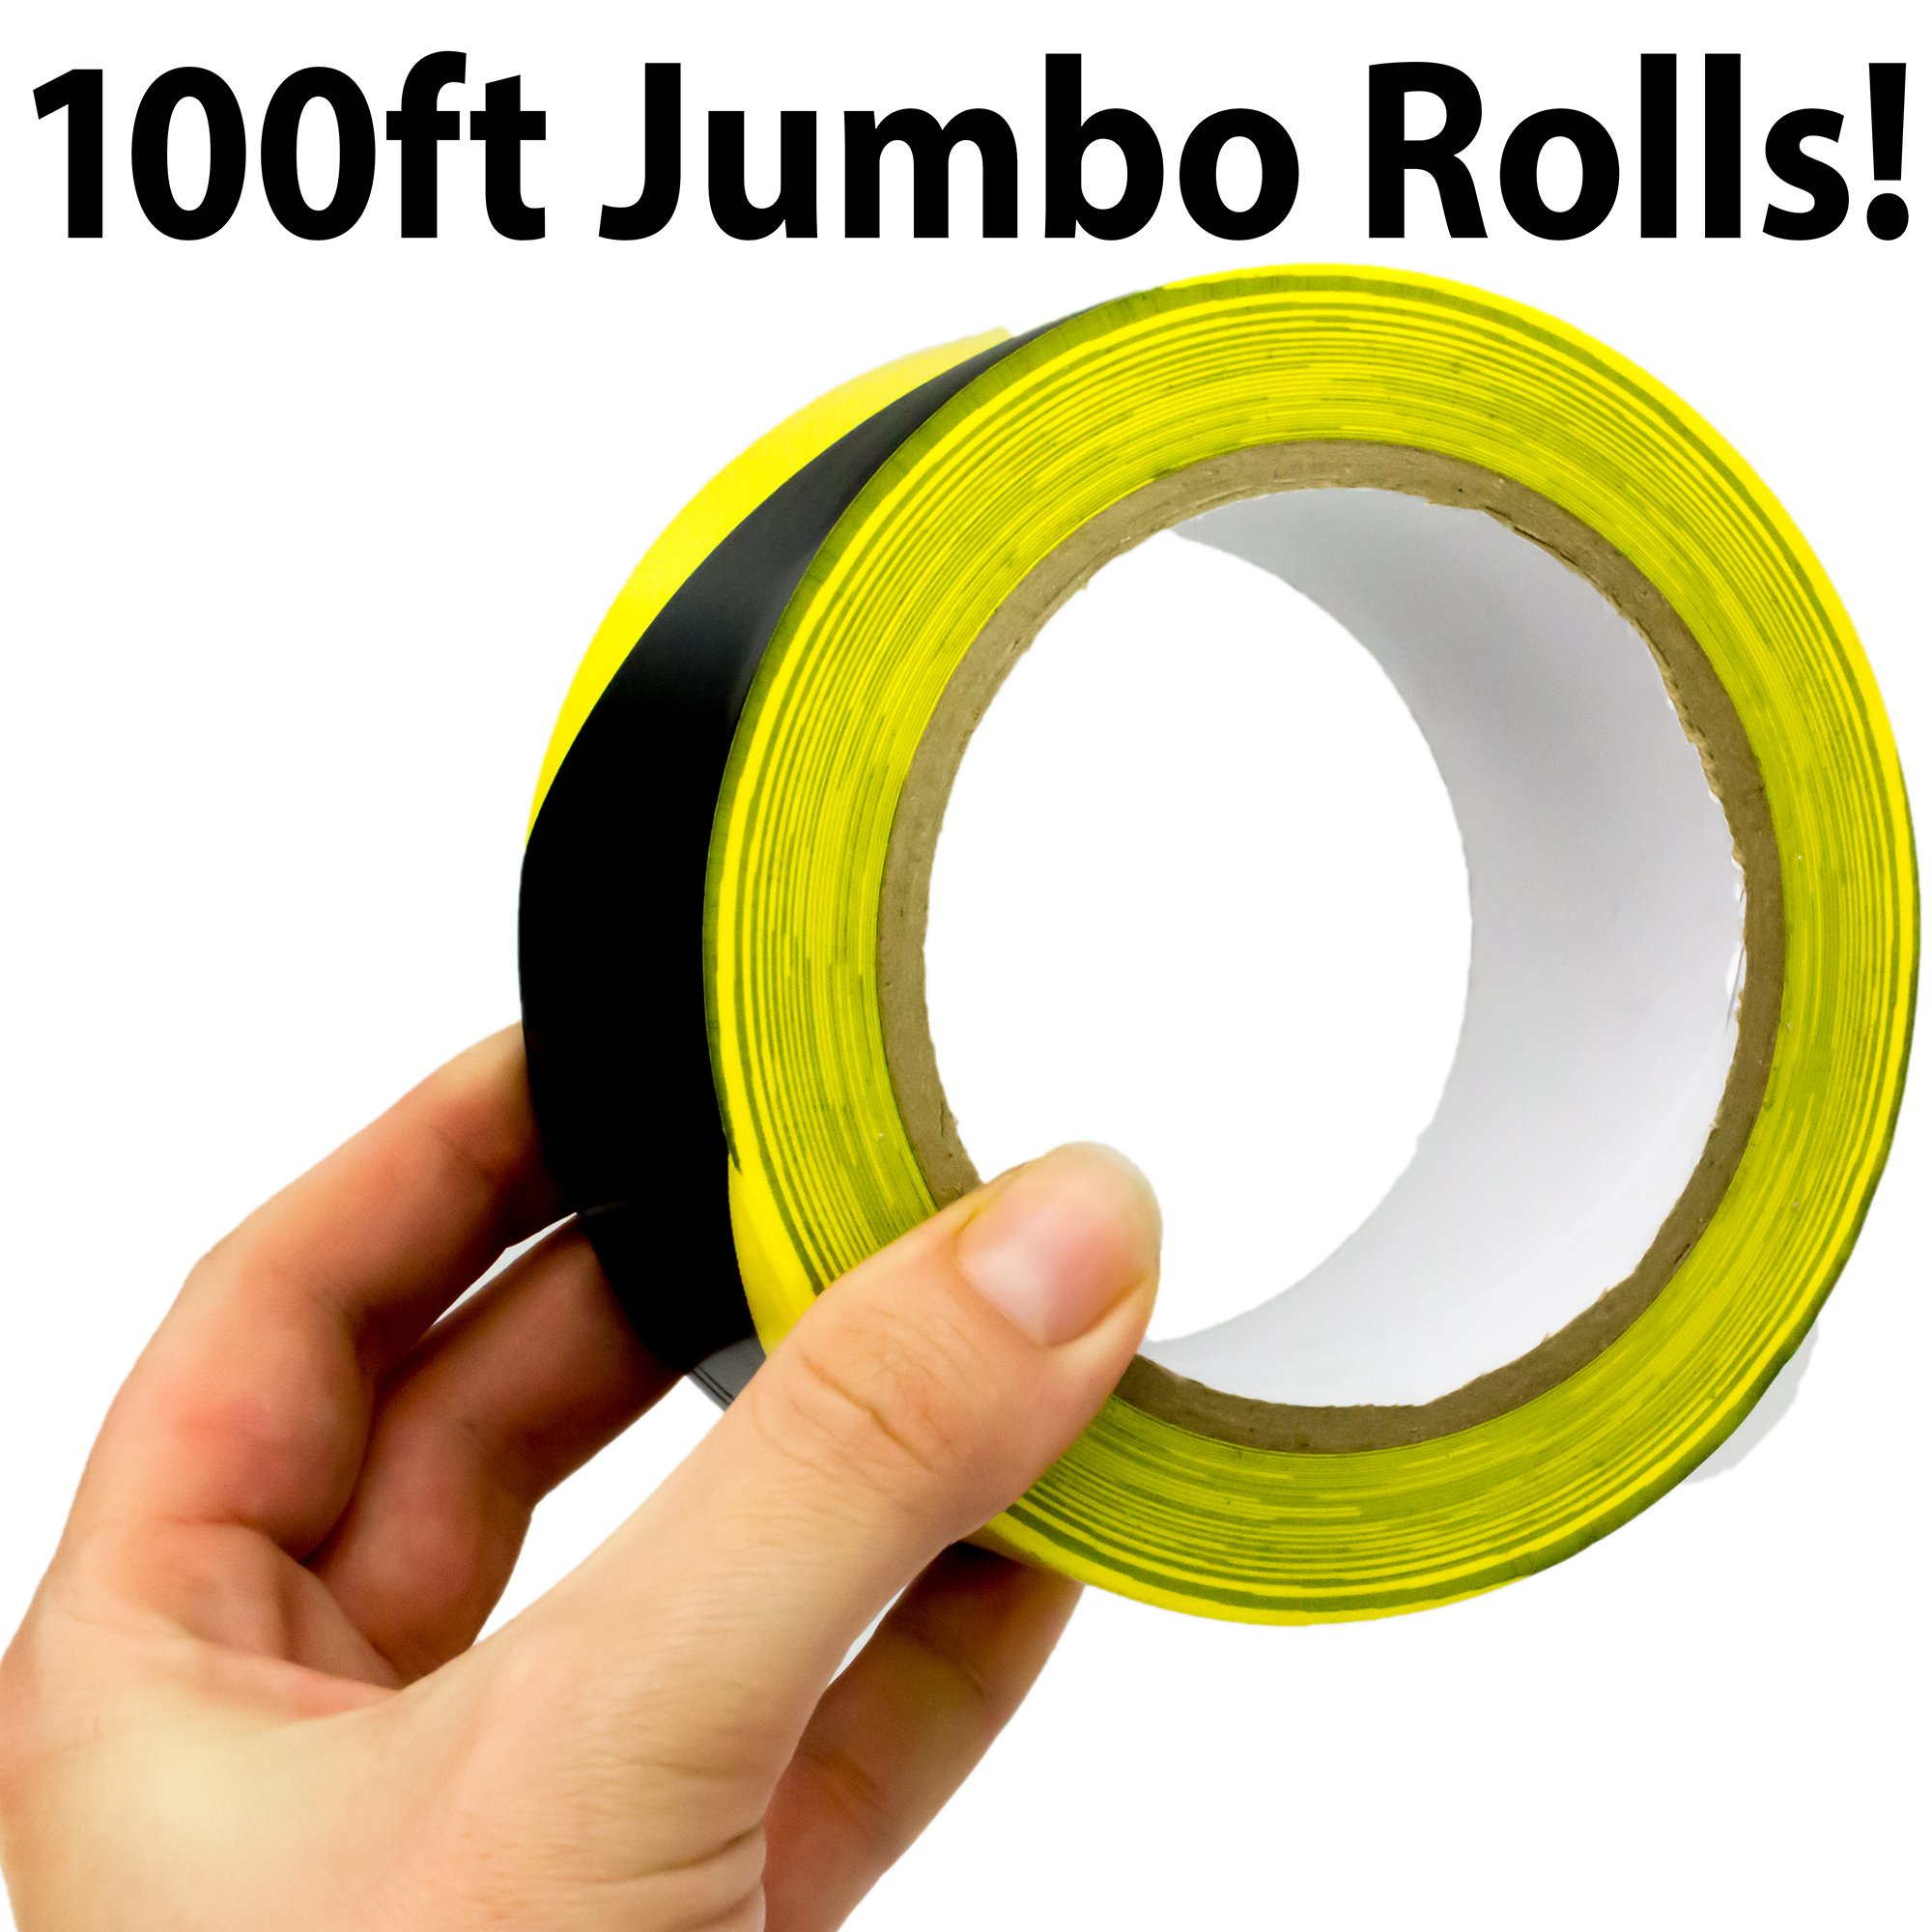 Double-Roll of Ultra-Adhesive, Black & Yellow Hazard Tape for Floor Marking. Mark Floors & Watch Your Step Areas for Safety with High-Visibility, Anti-Scuff, Striped PVC Vinyl by Nova Supply by Nova (Image #2)